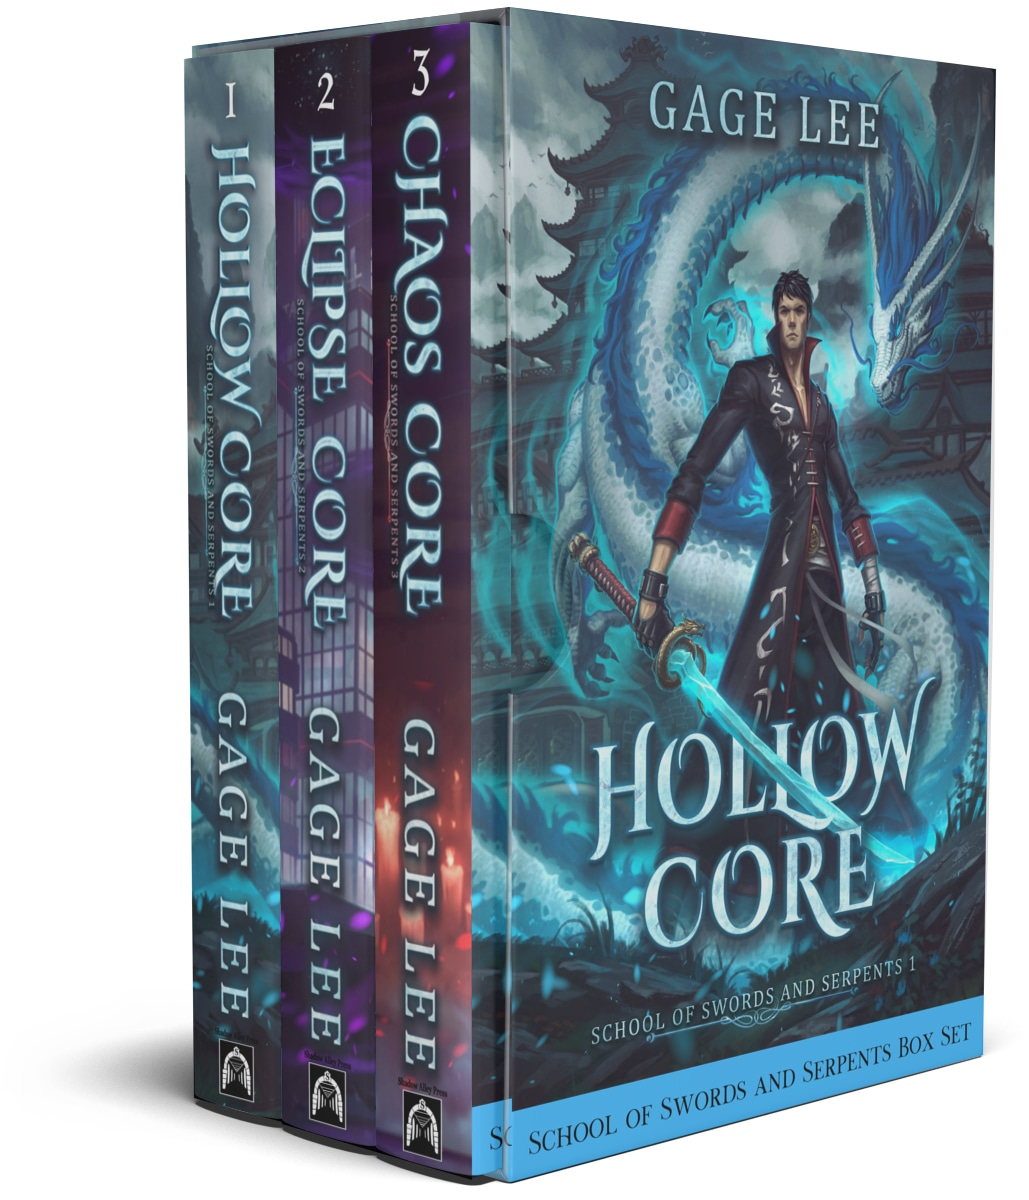 Enter to win an eBook Box Set of School of Swords and Serpents from the author Gage Lee. Each set is valued at $30 and consists of 6 eBooks. 10 Winners! Giveaway Image